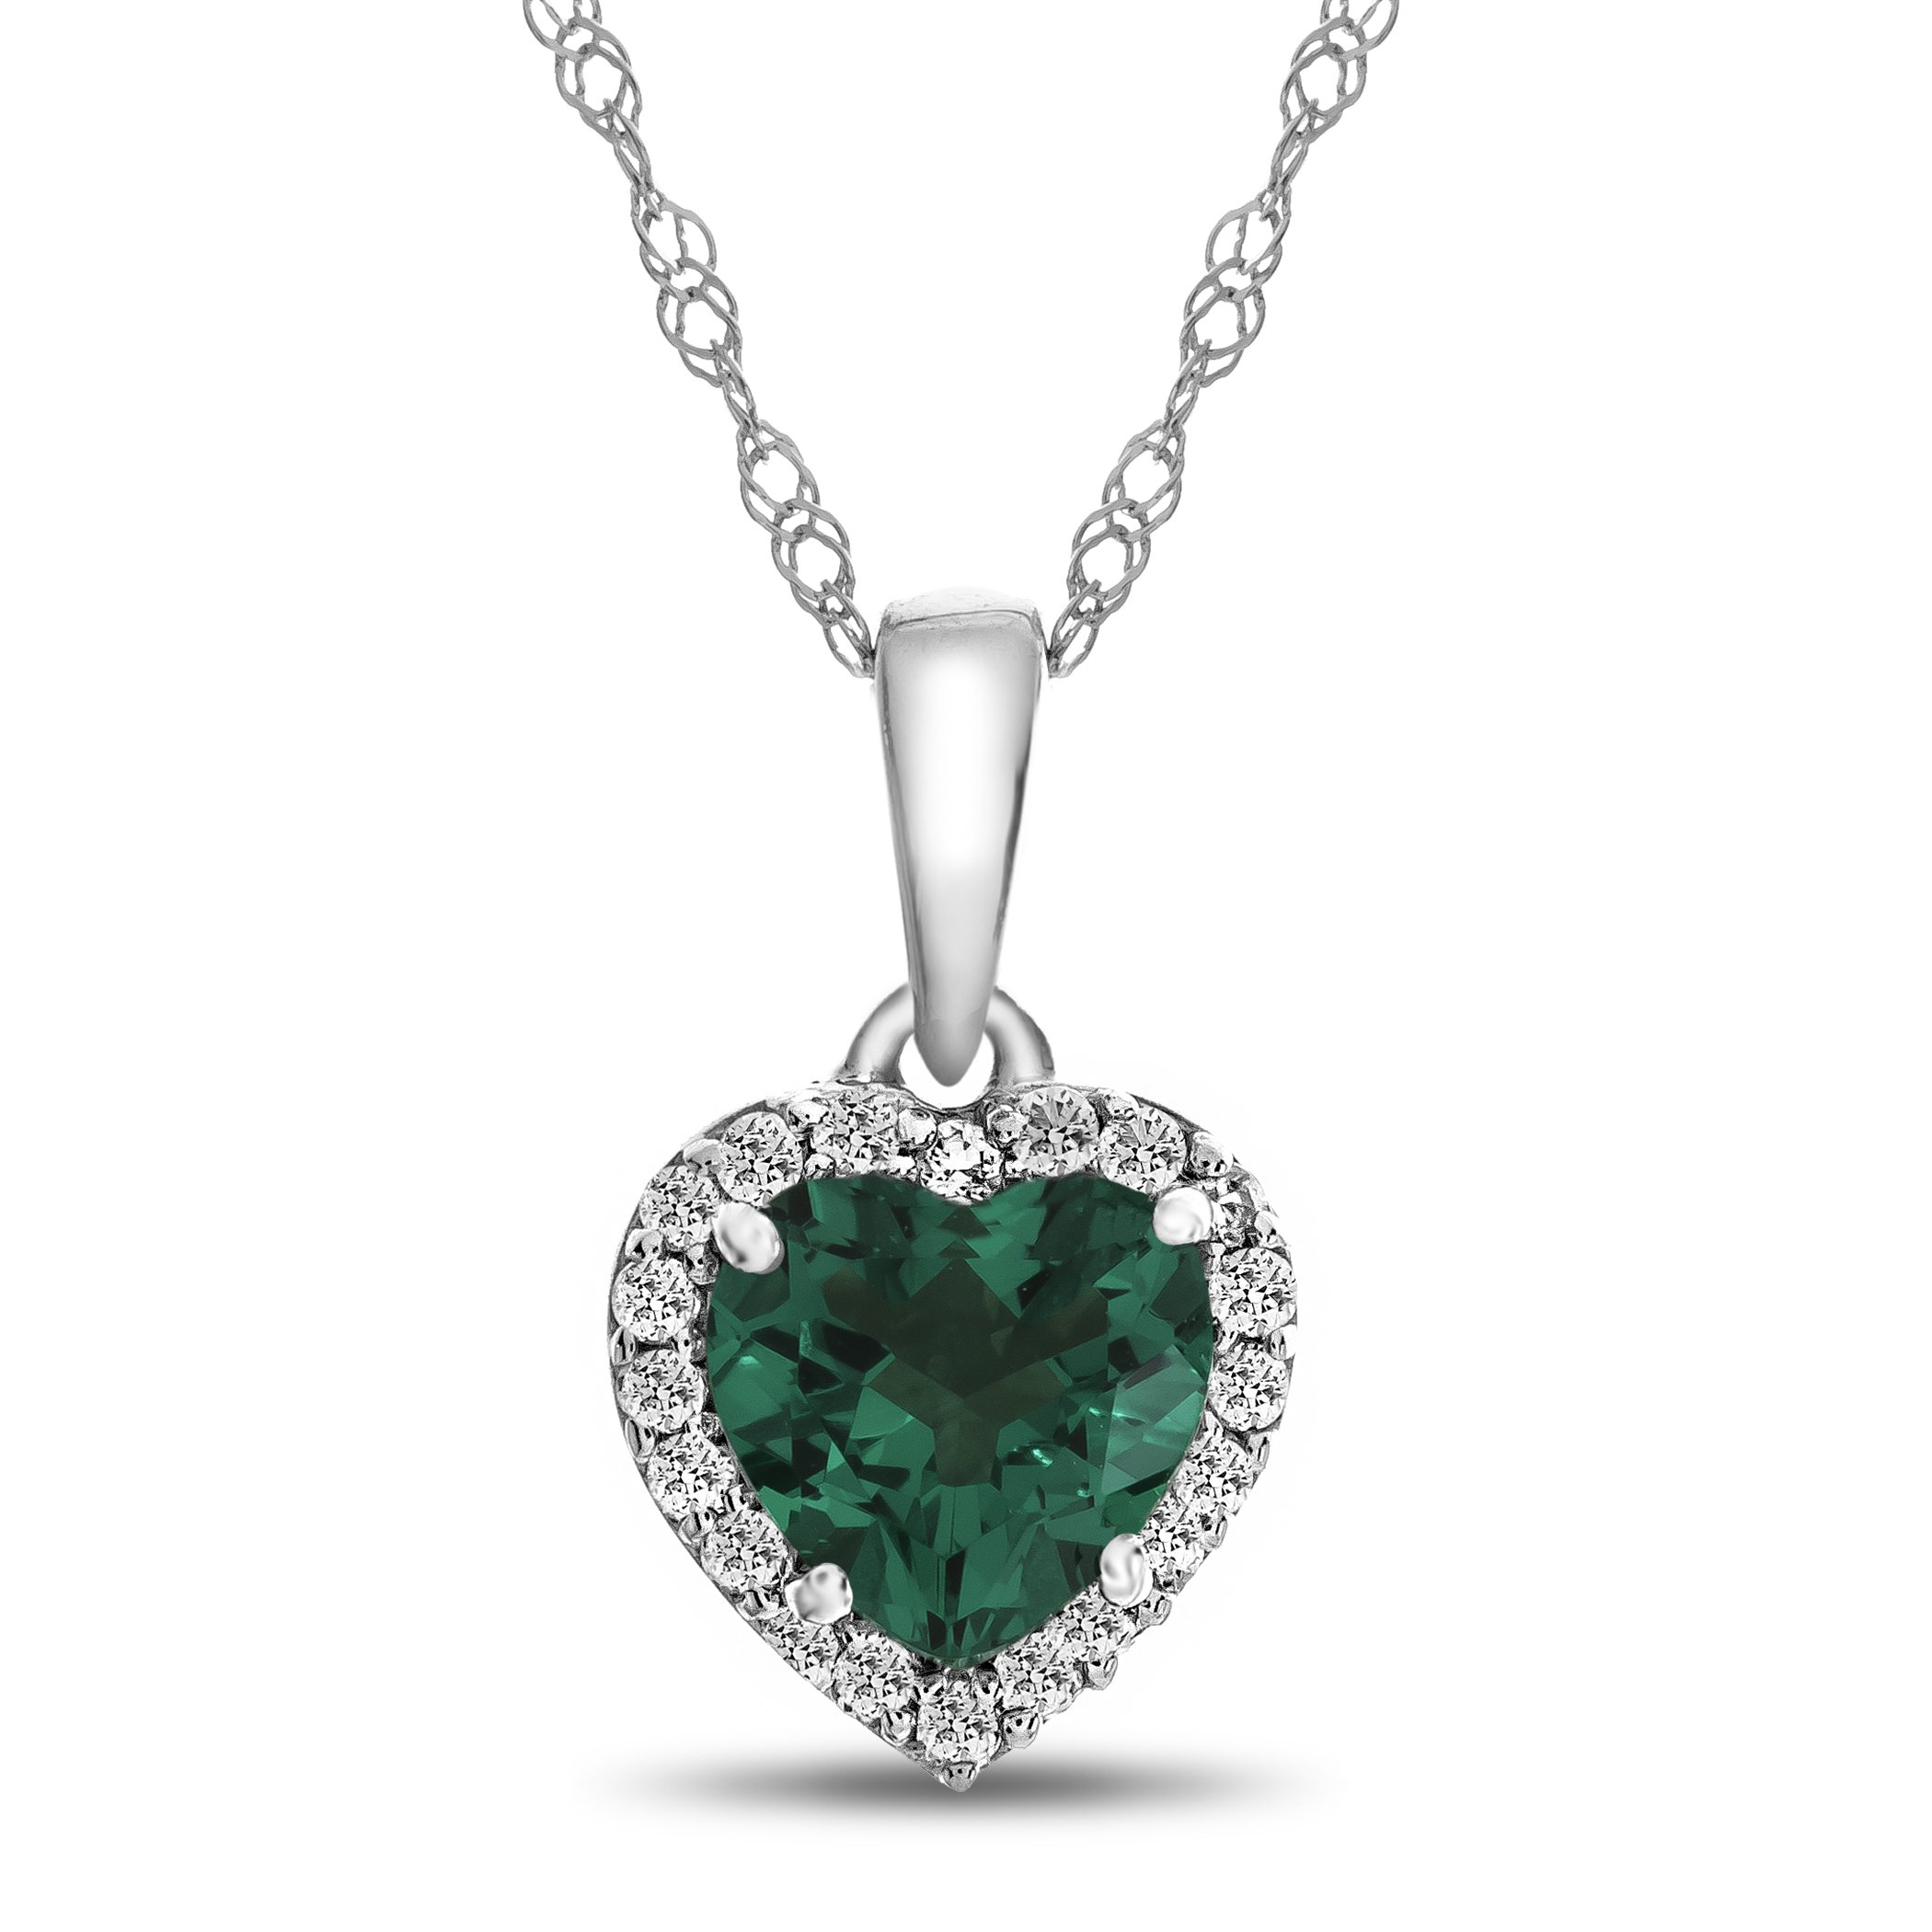 10k White Gold 6mm Heart Shaped Simulated Emerald with White Topaz accent stones Halo Pendant Necklace